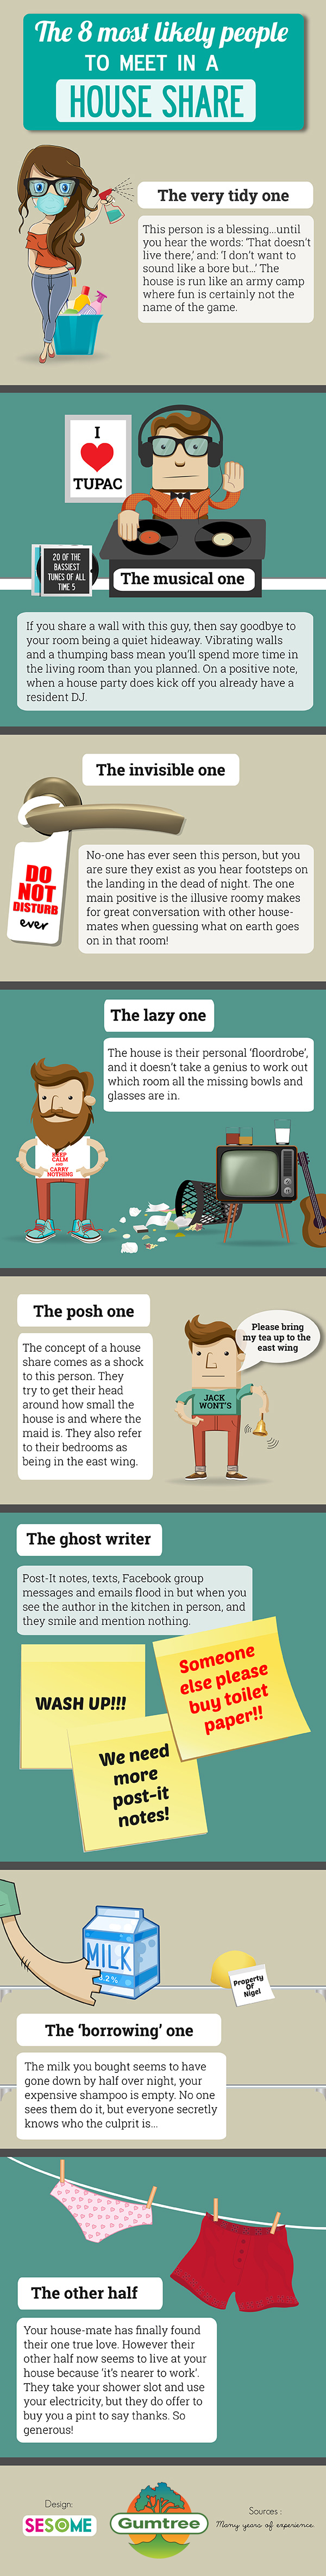 People you will meet during a house share #infographic